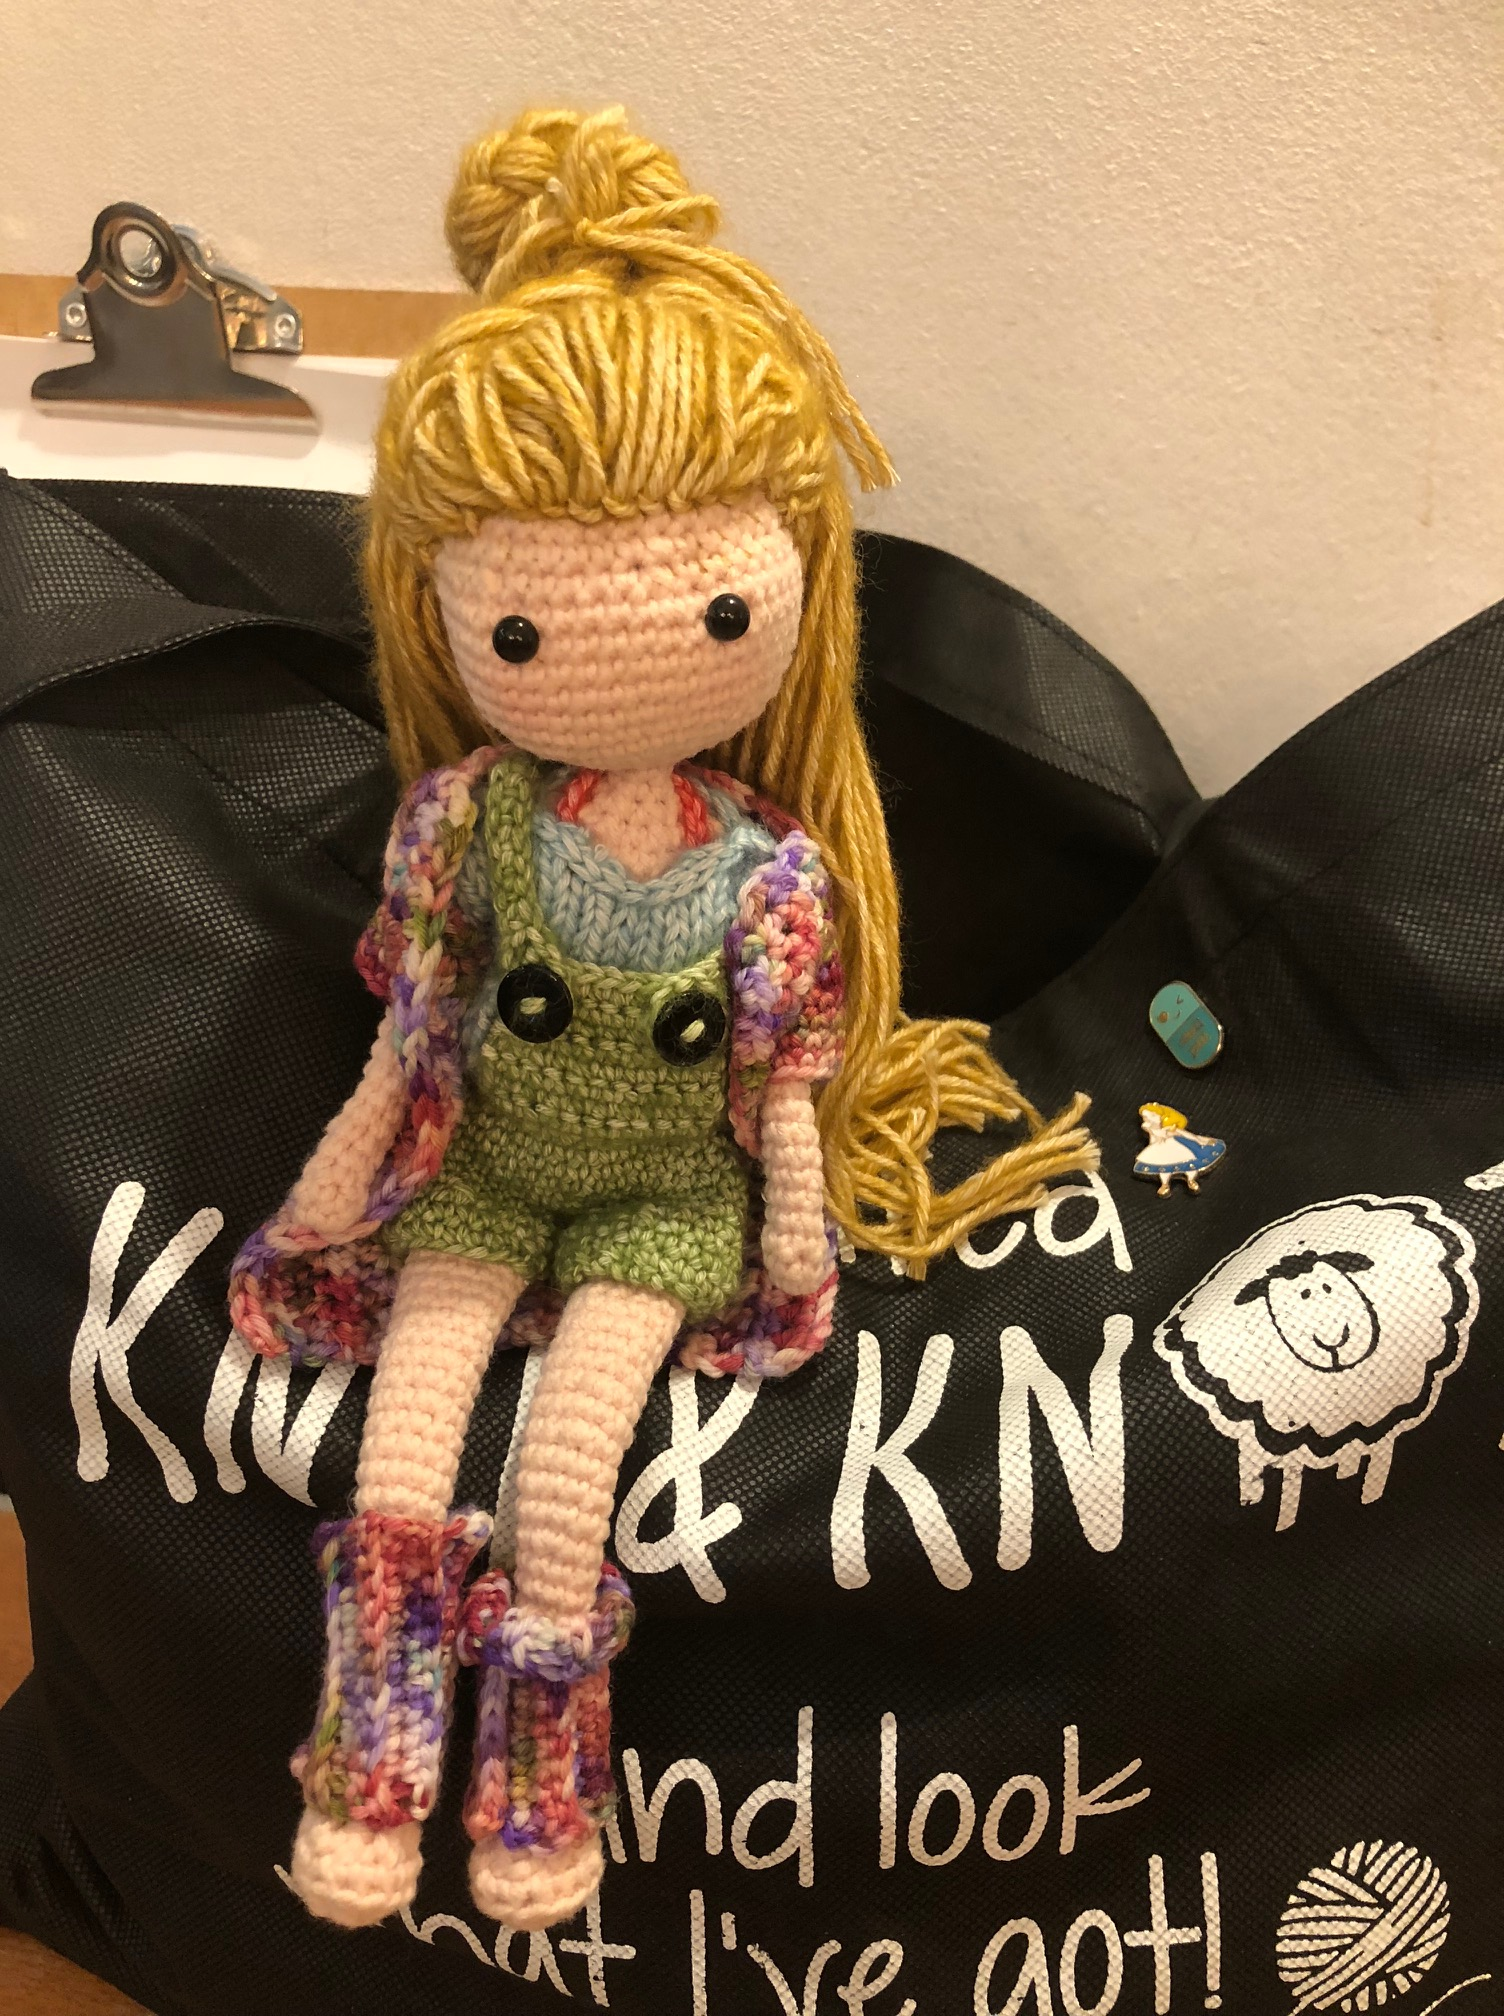 I Visited KNIT&KNOT and look what I've got!